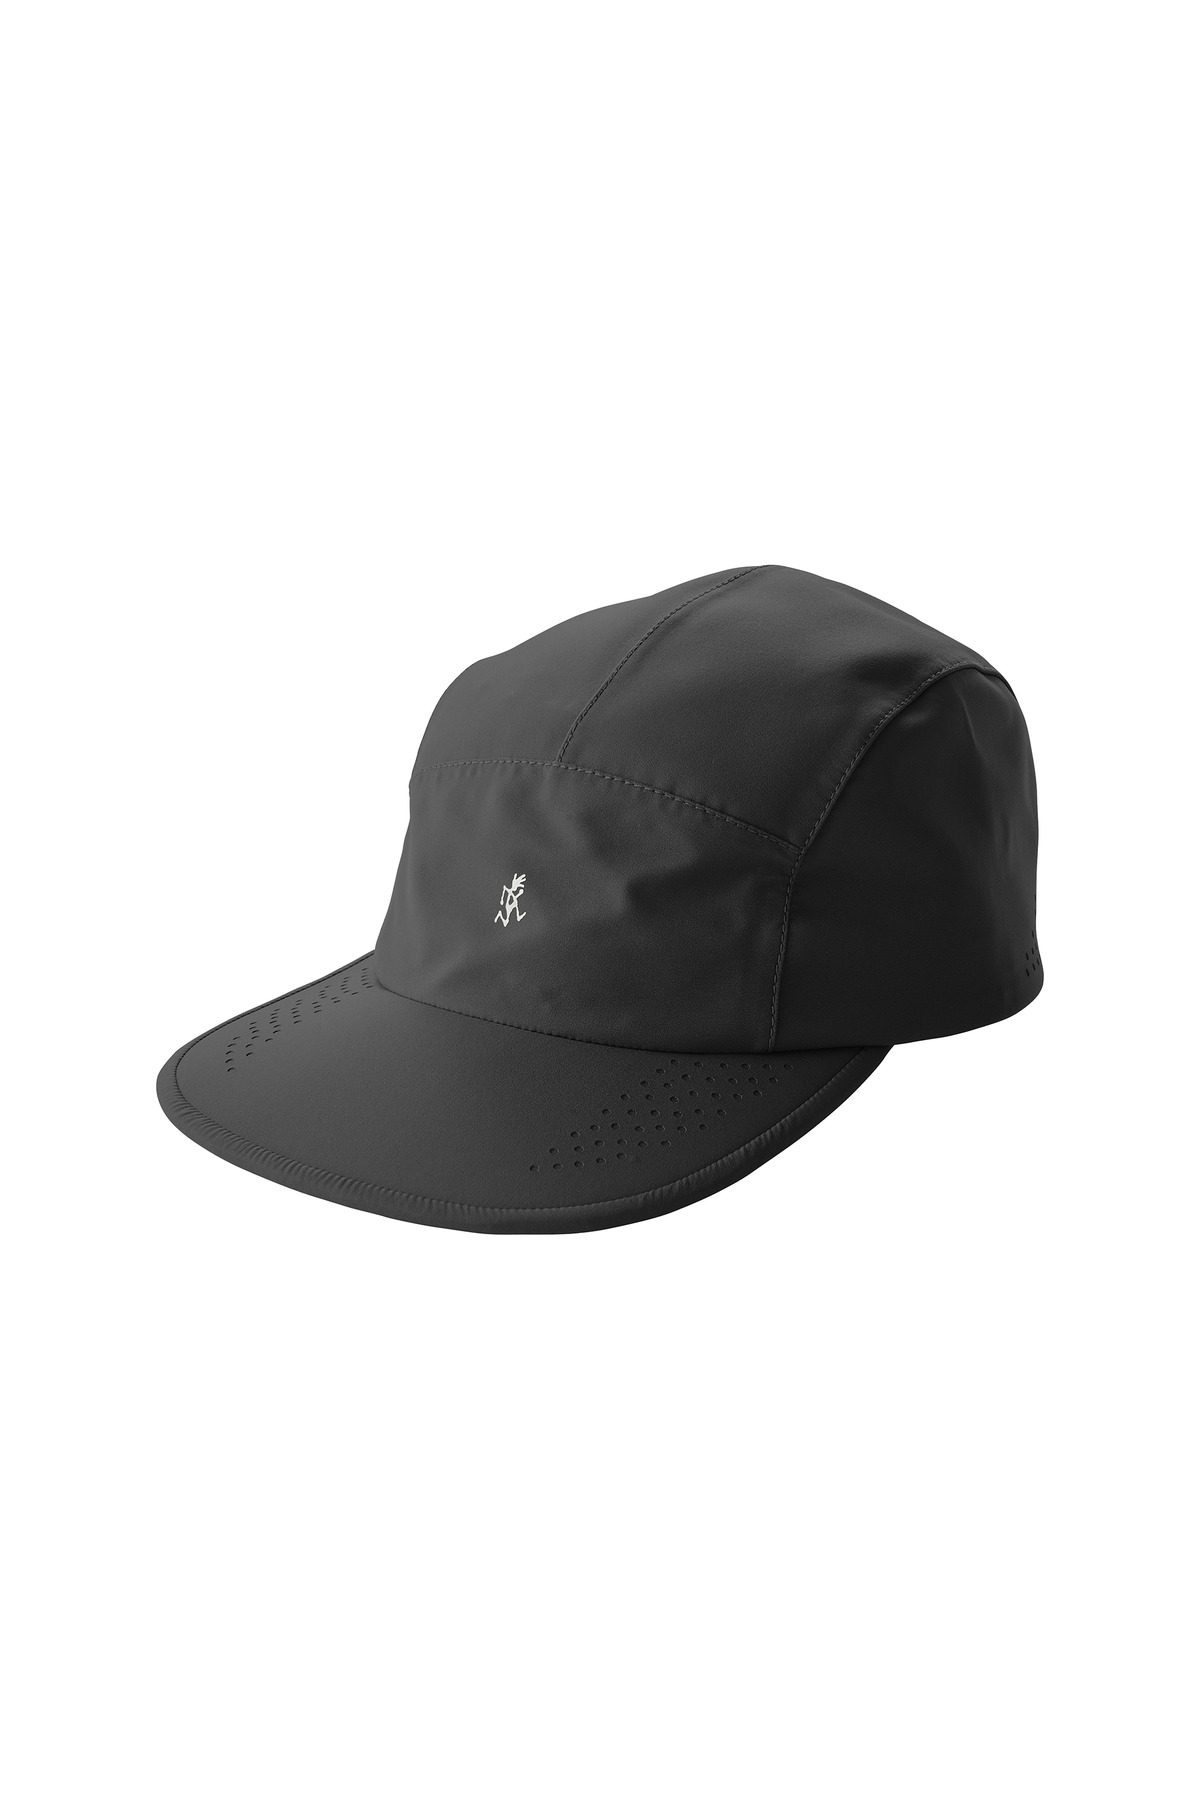 3 LAYER TECH JET CAP BLACK